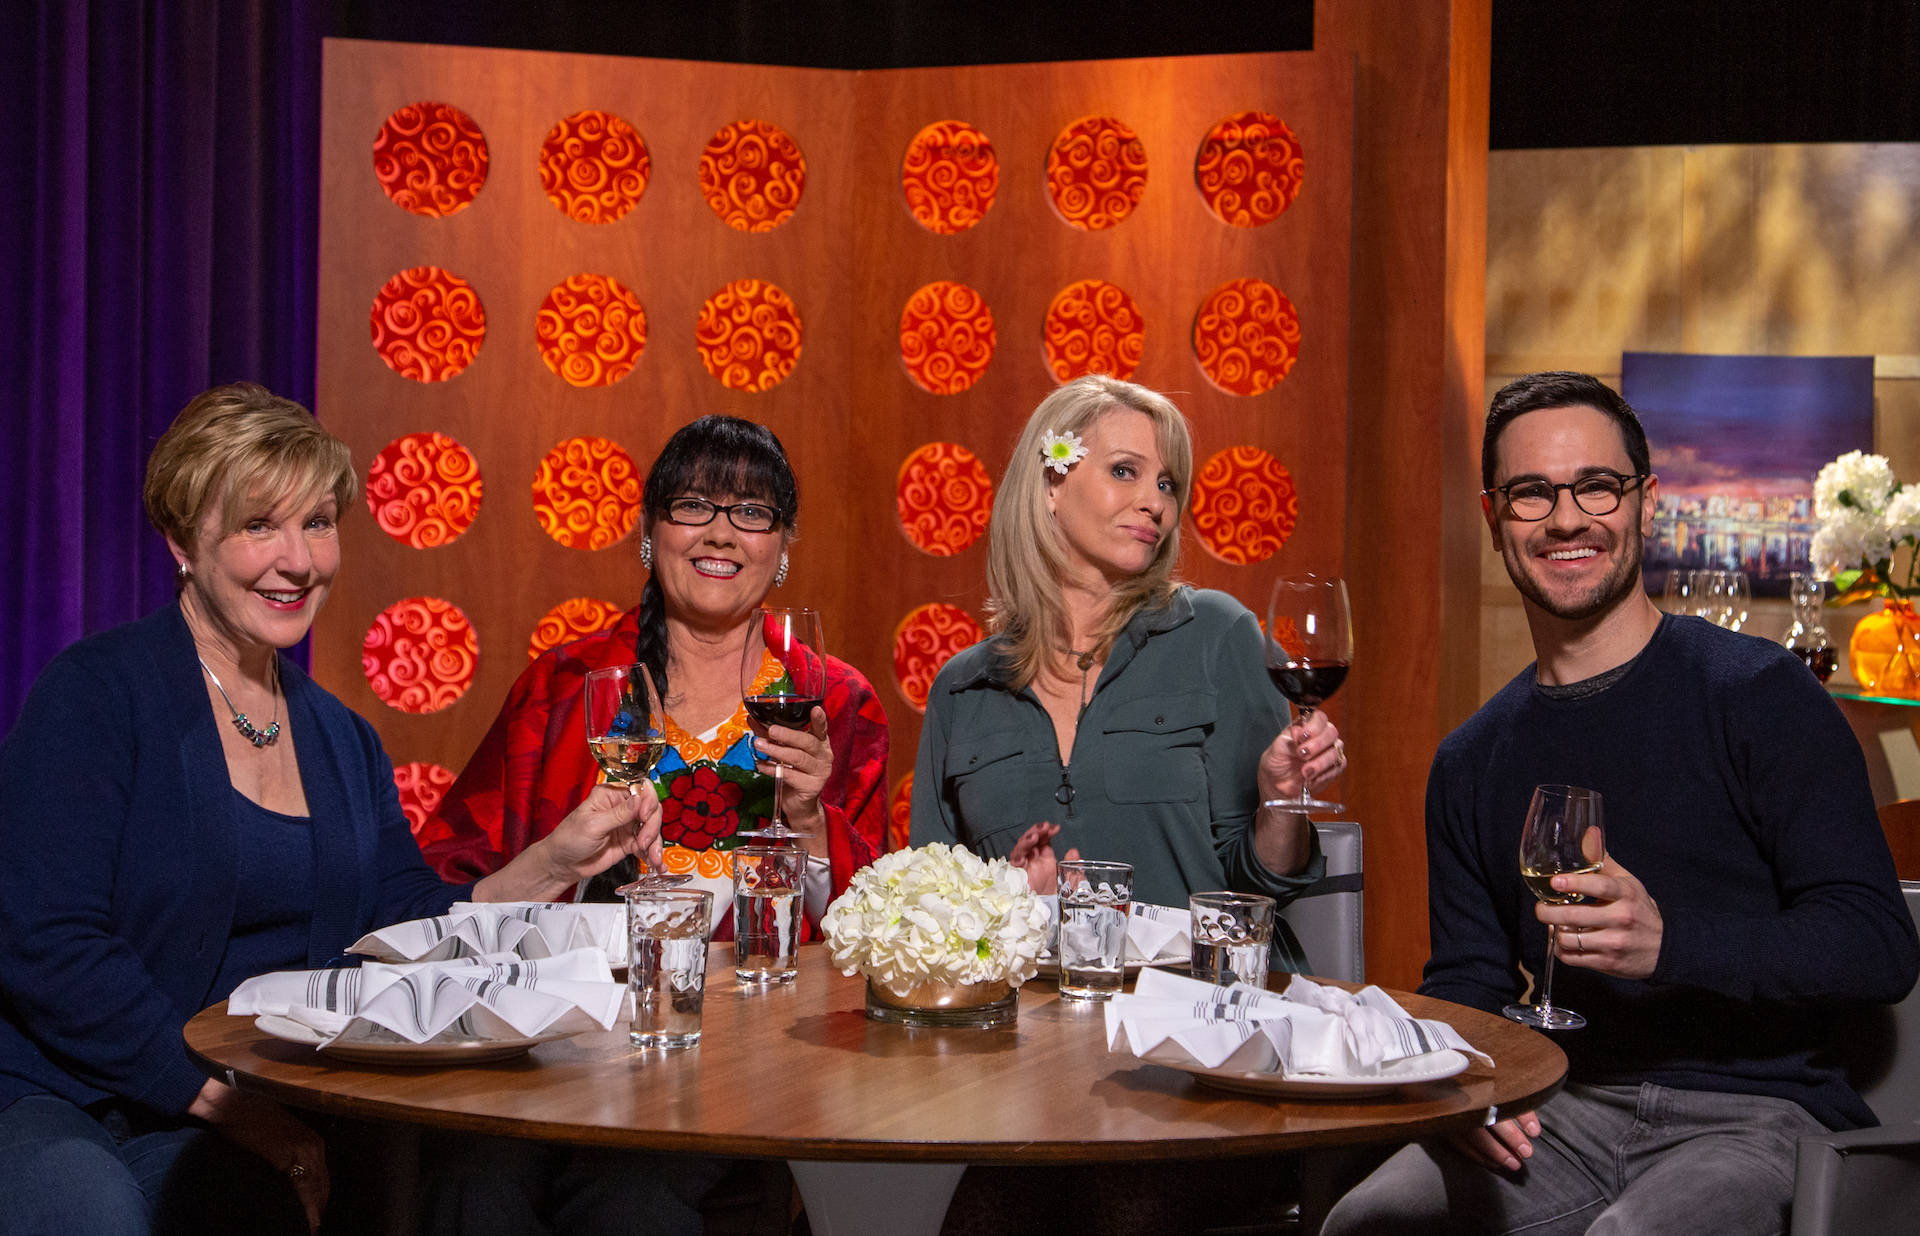 Host Leslie Sbrocco and guests on the set of season 14 episode 5.